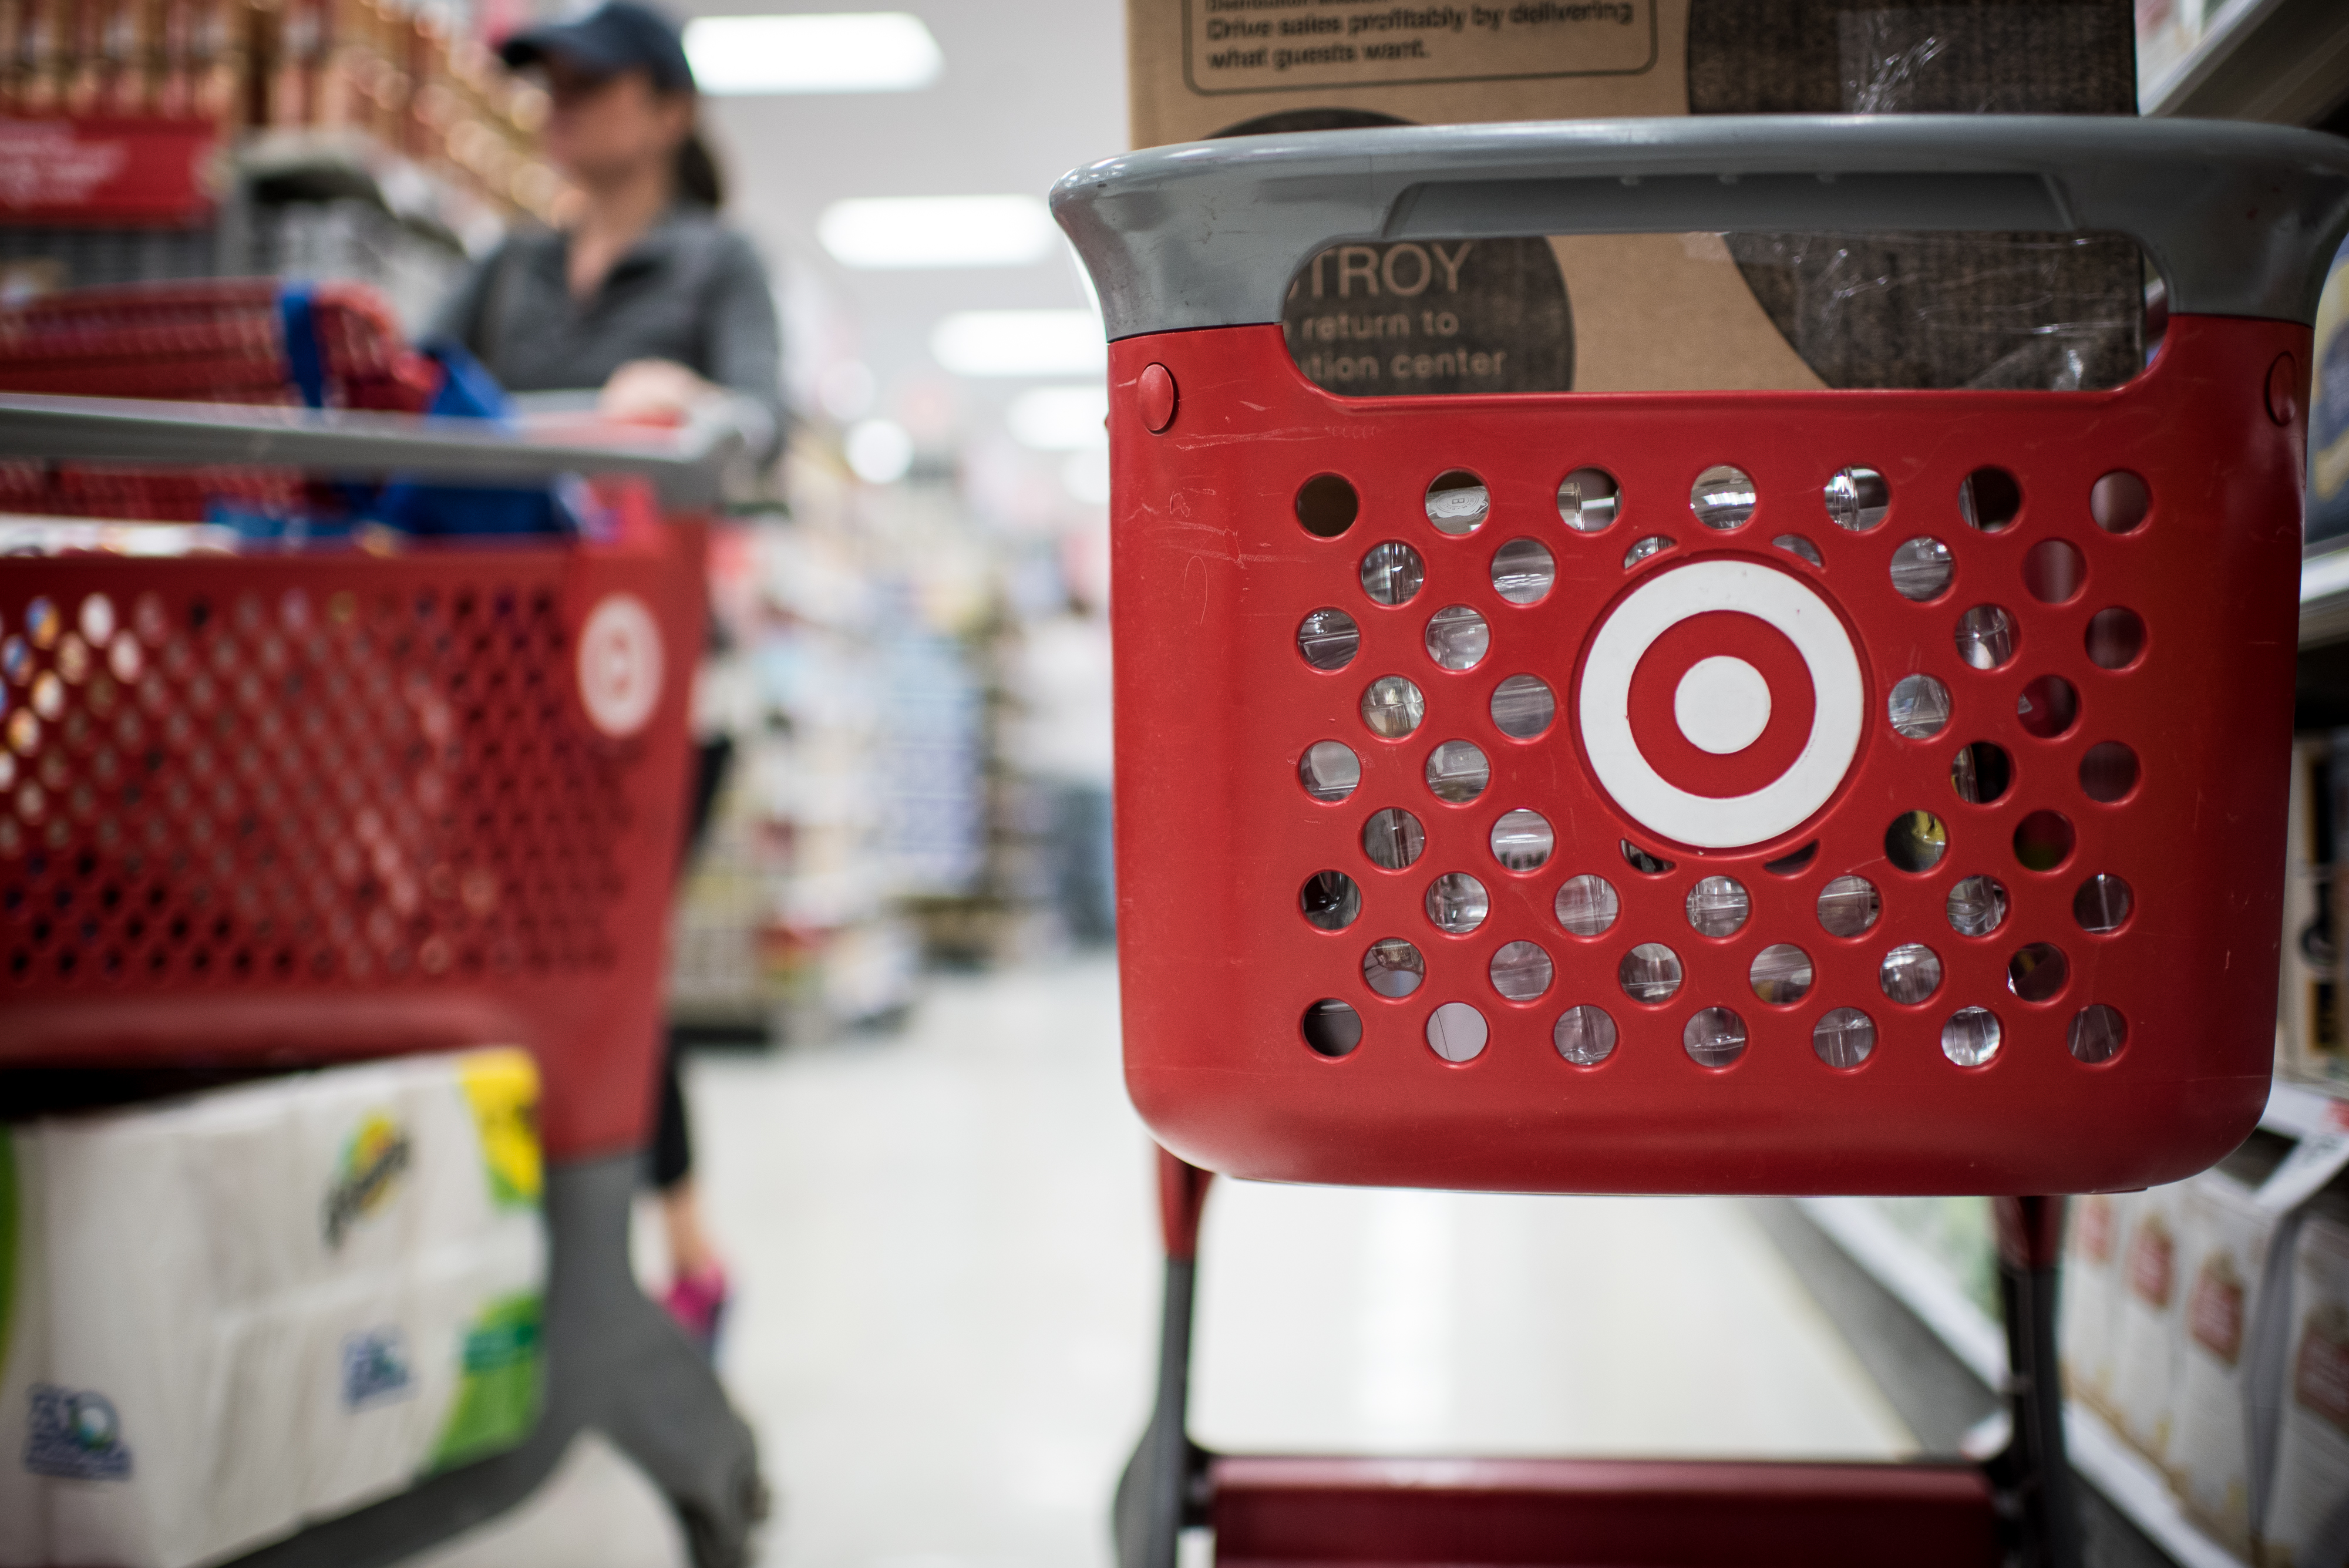 Customers use Target Corp. shopping carts to move products inside a company's store in Chicago, Illinois, U.S., on Monday, May 16, 2016.